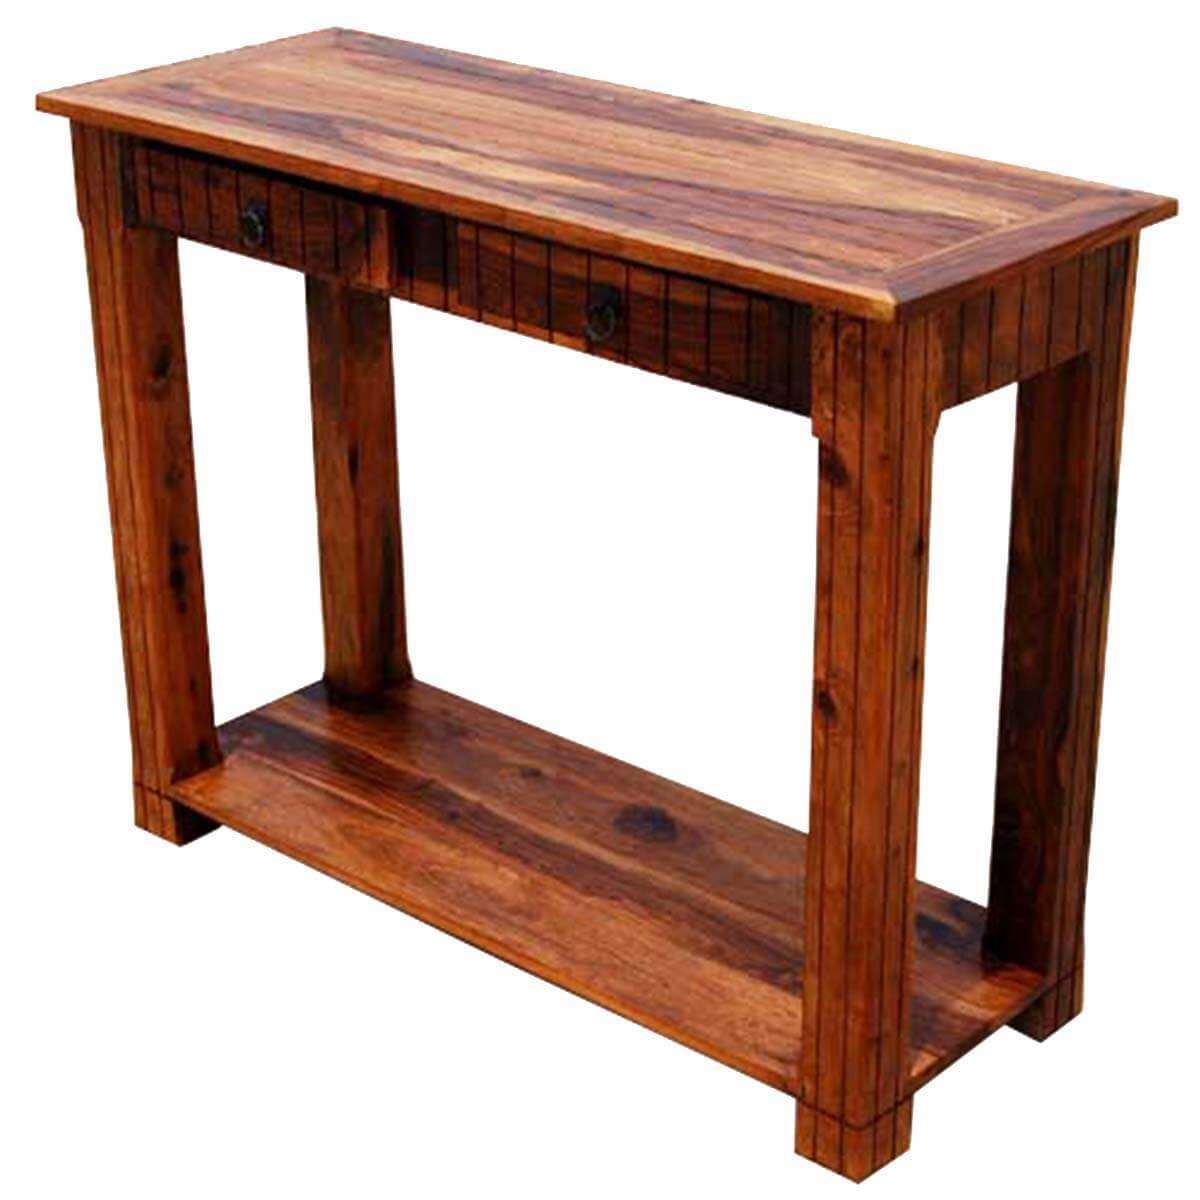 Solid wood 2 storage drawer sofa entryway console table Console tables with storage